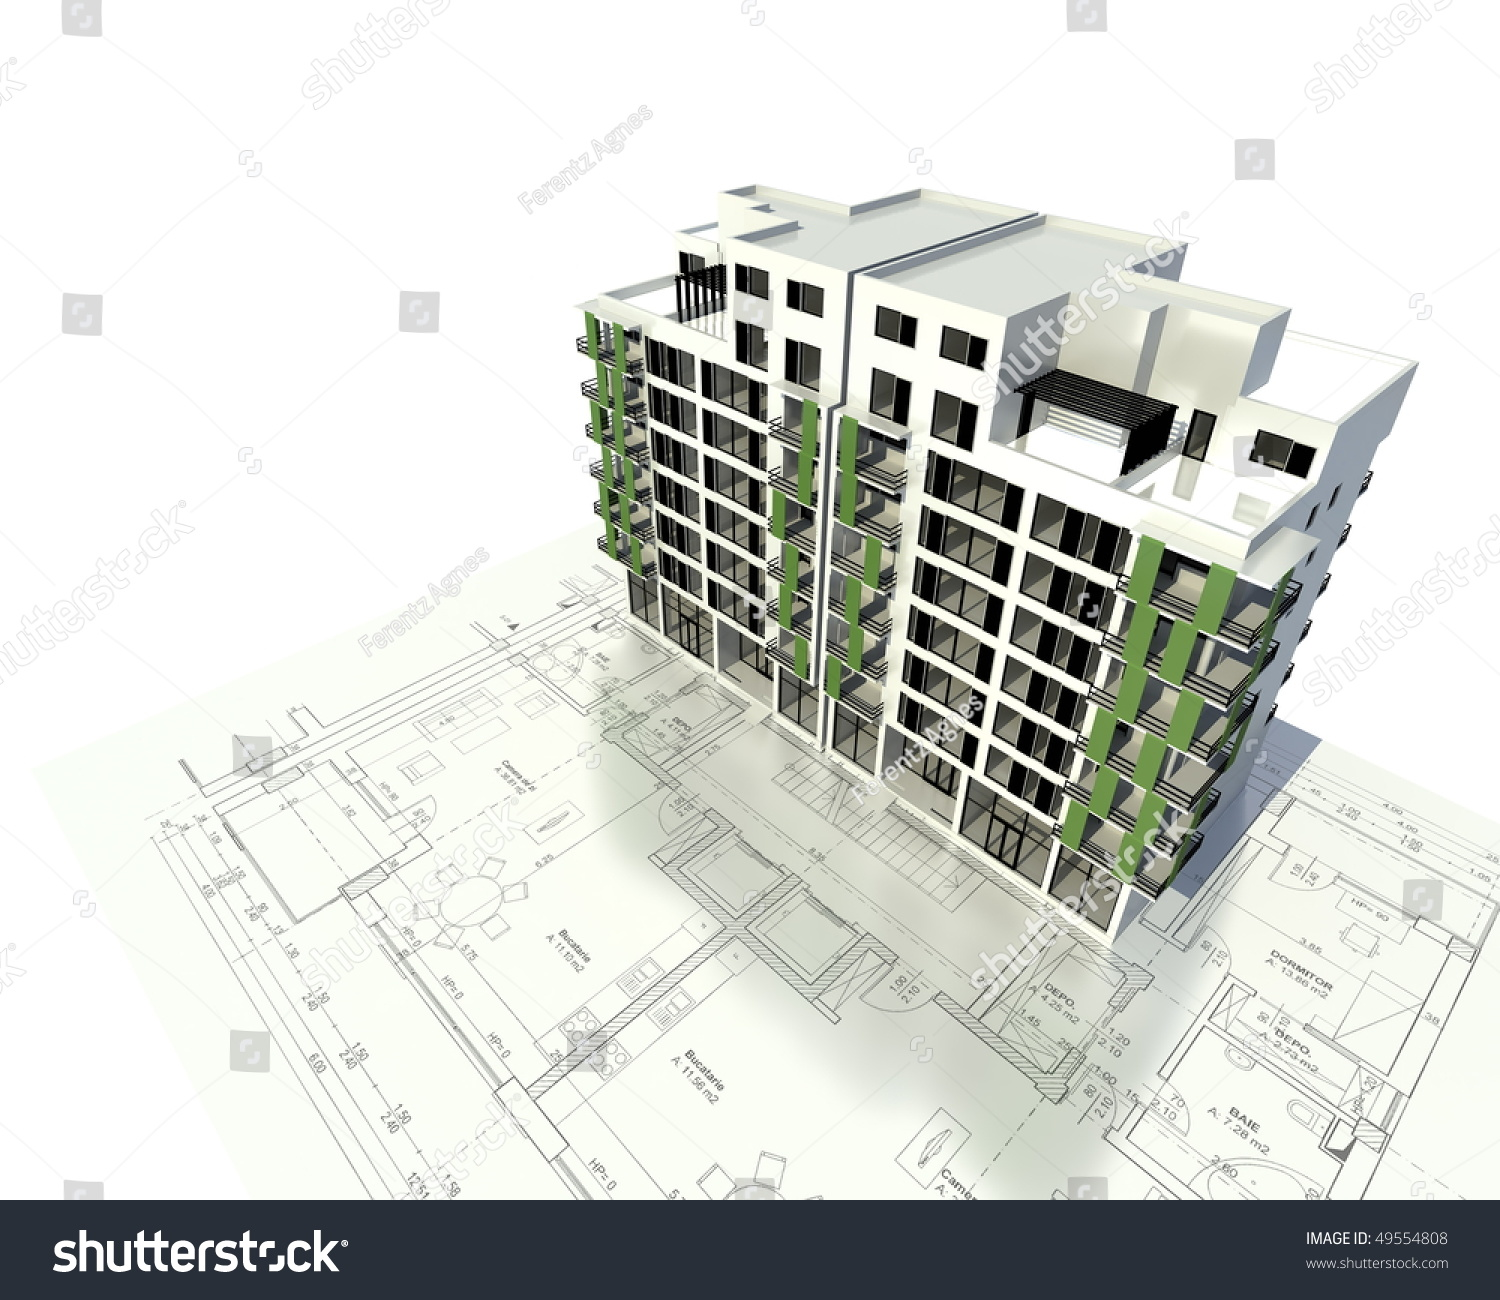 Architecture Model House Showing Building Structure Stock ...